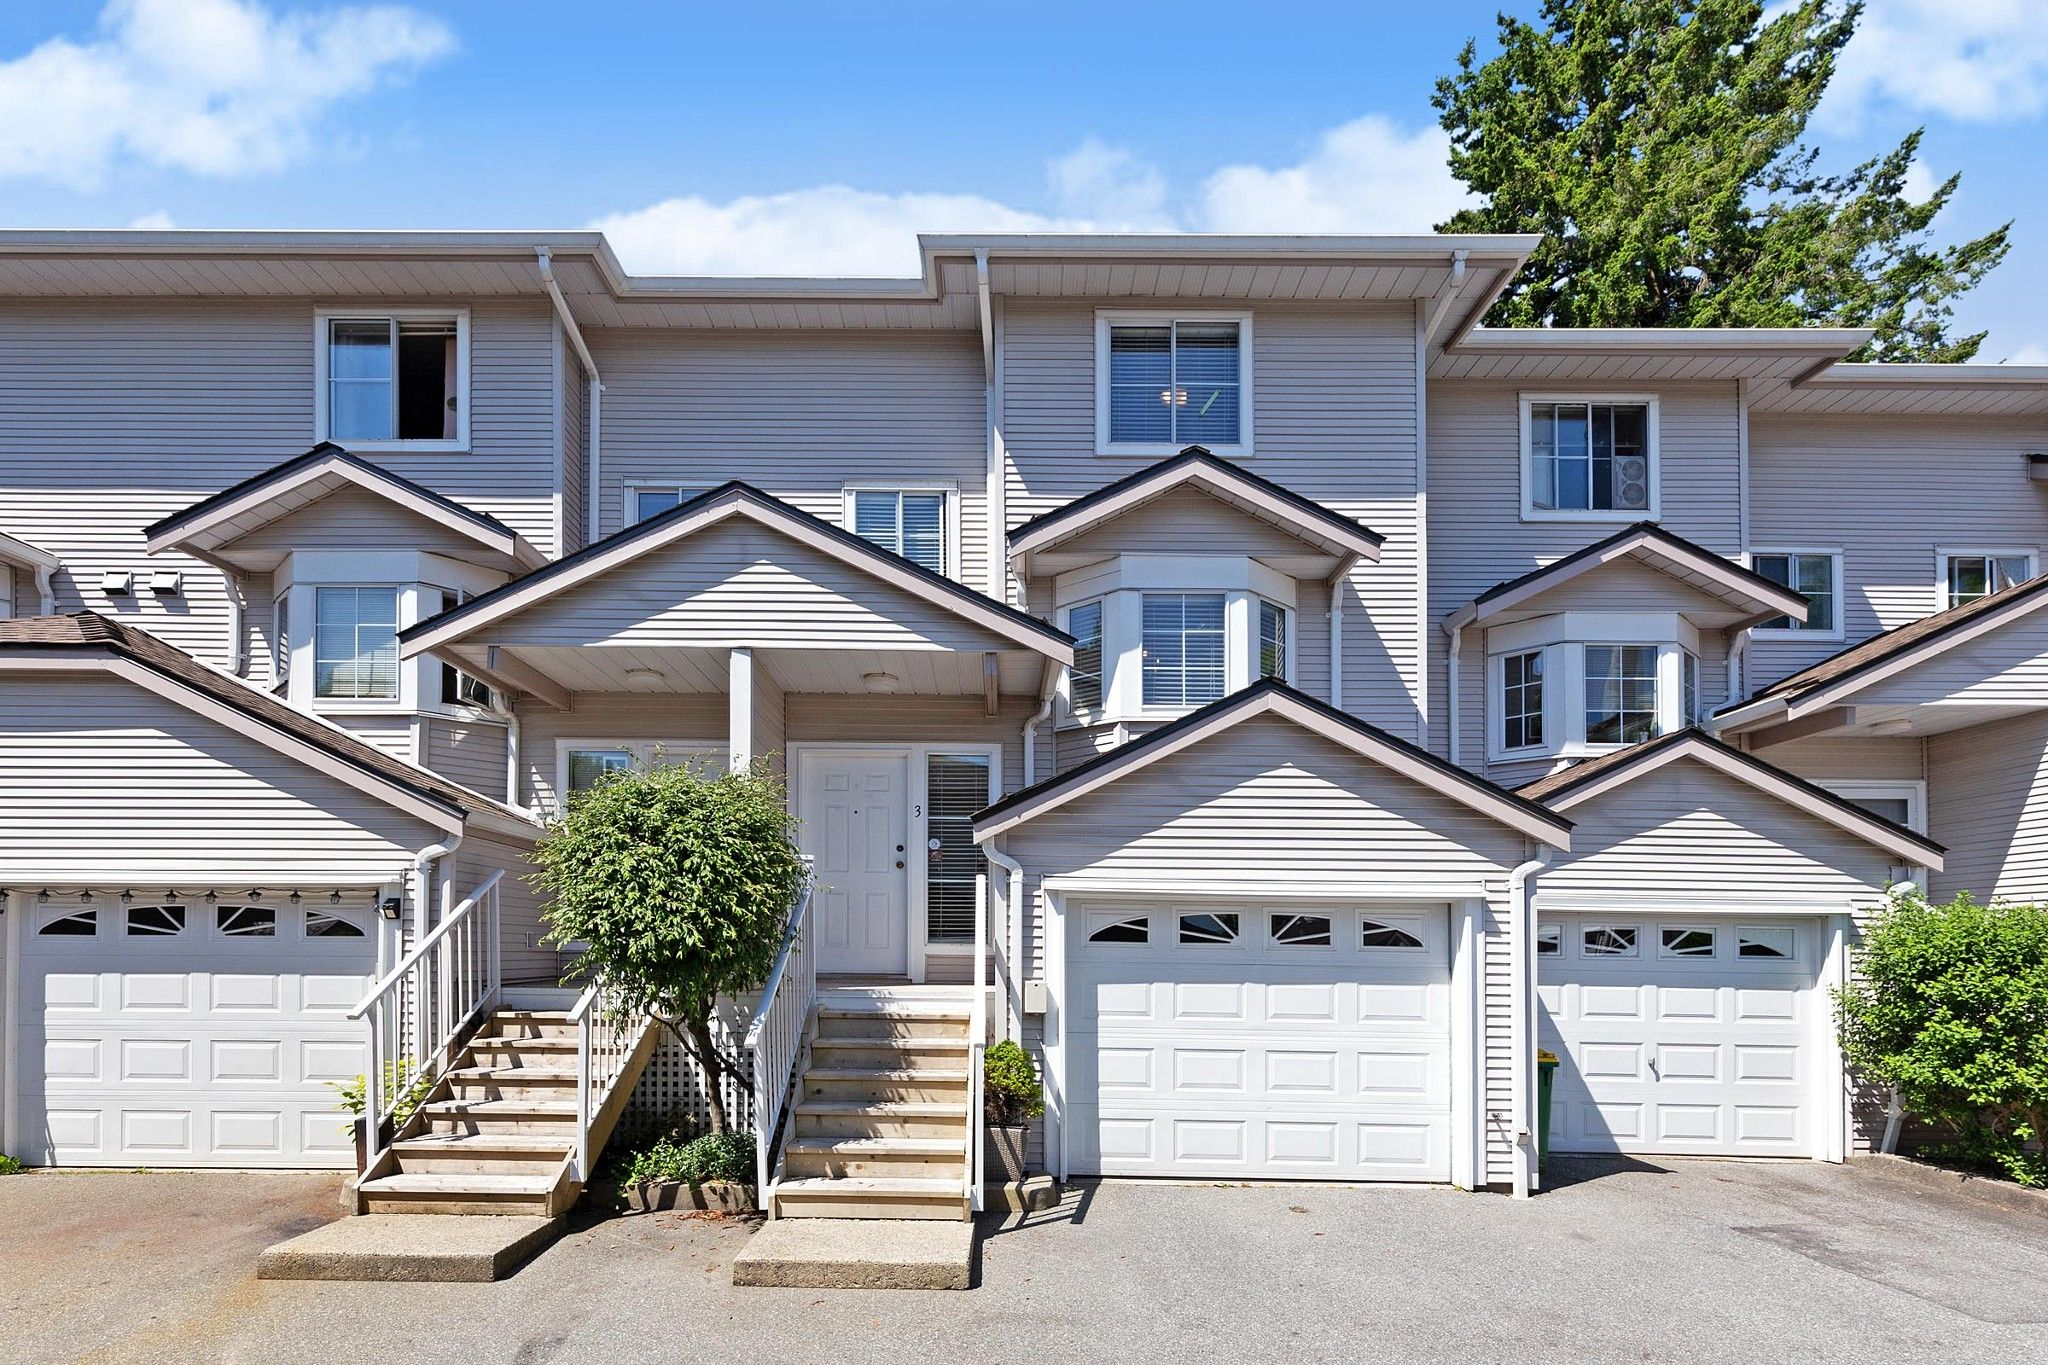 """Main Photo: 3 12188 HARRIS Road in Pitt Meadows: Central Meadows Townhouse for sale in """"Waterford Place"""" : MLS®# R2593269"""